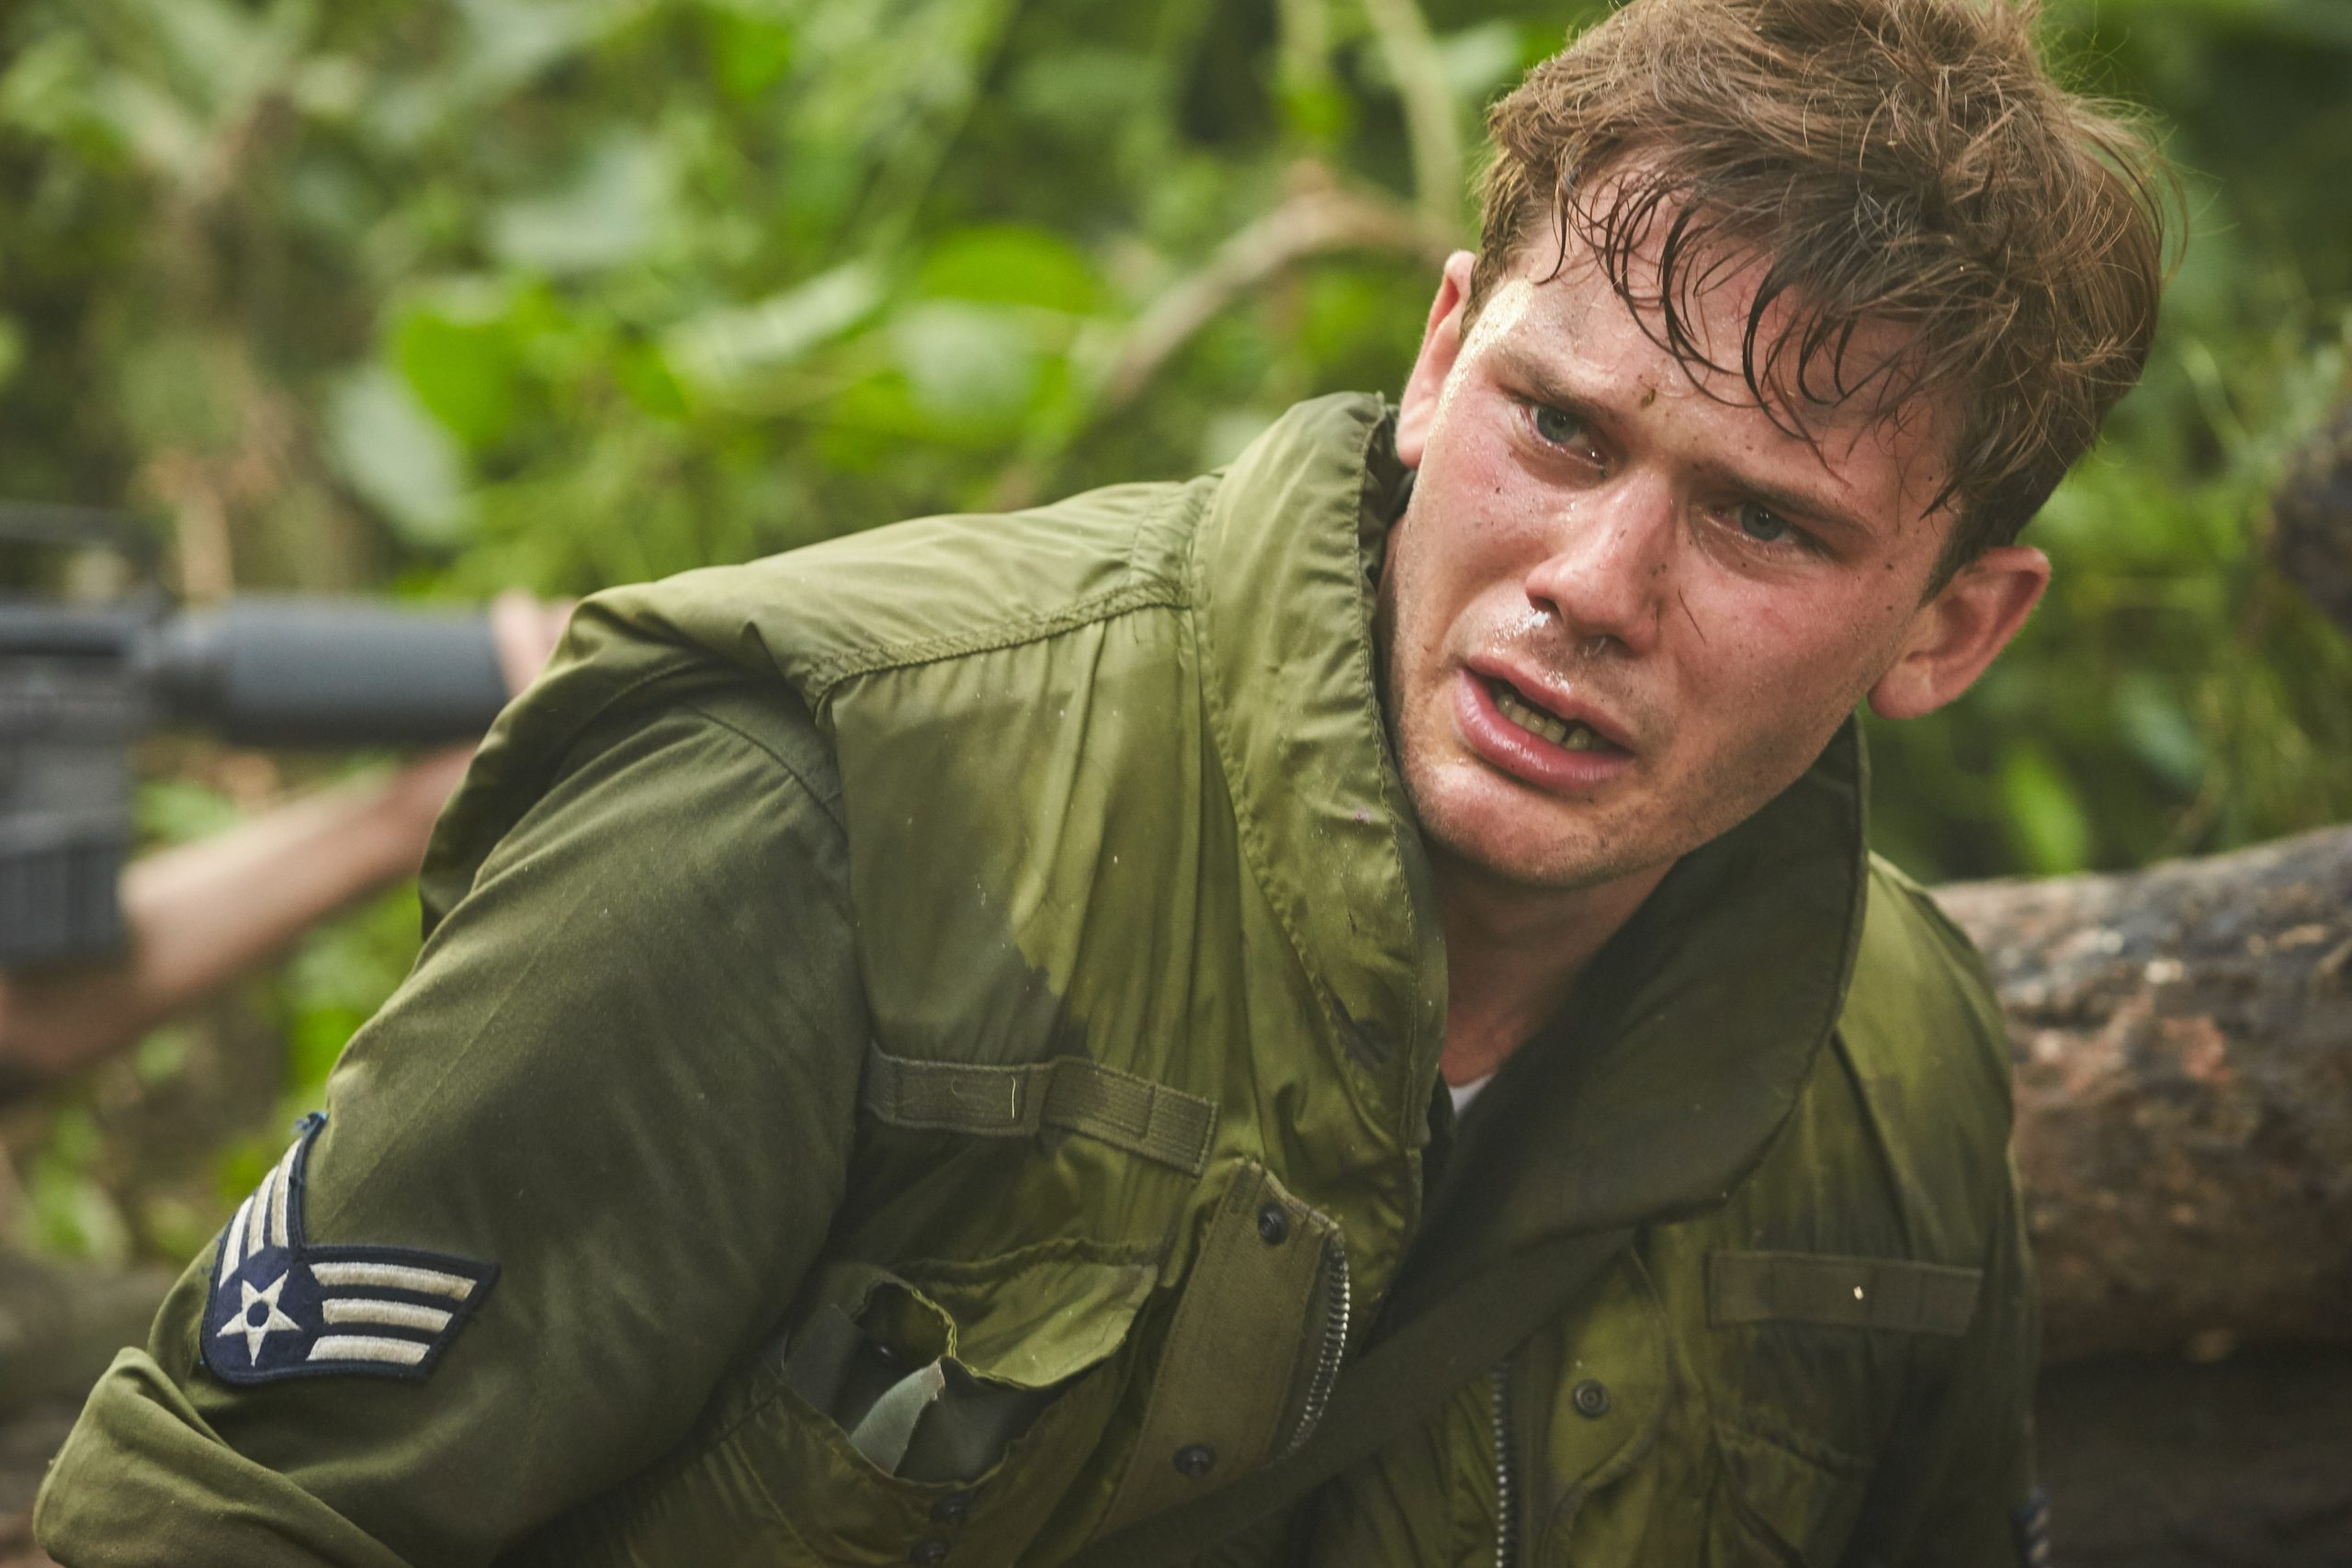 Jeremy Irvine as William Pitsenbarger in The Last Full Measure